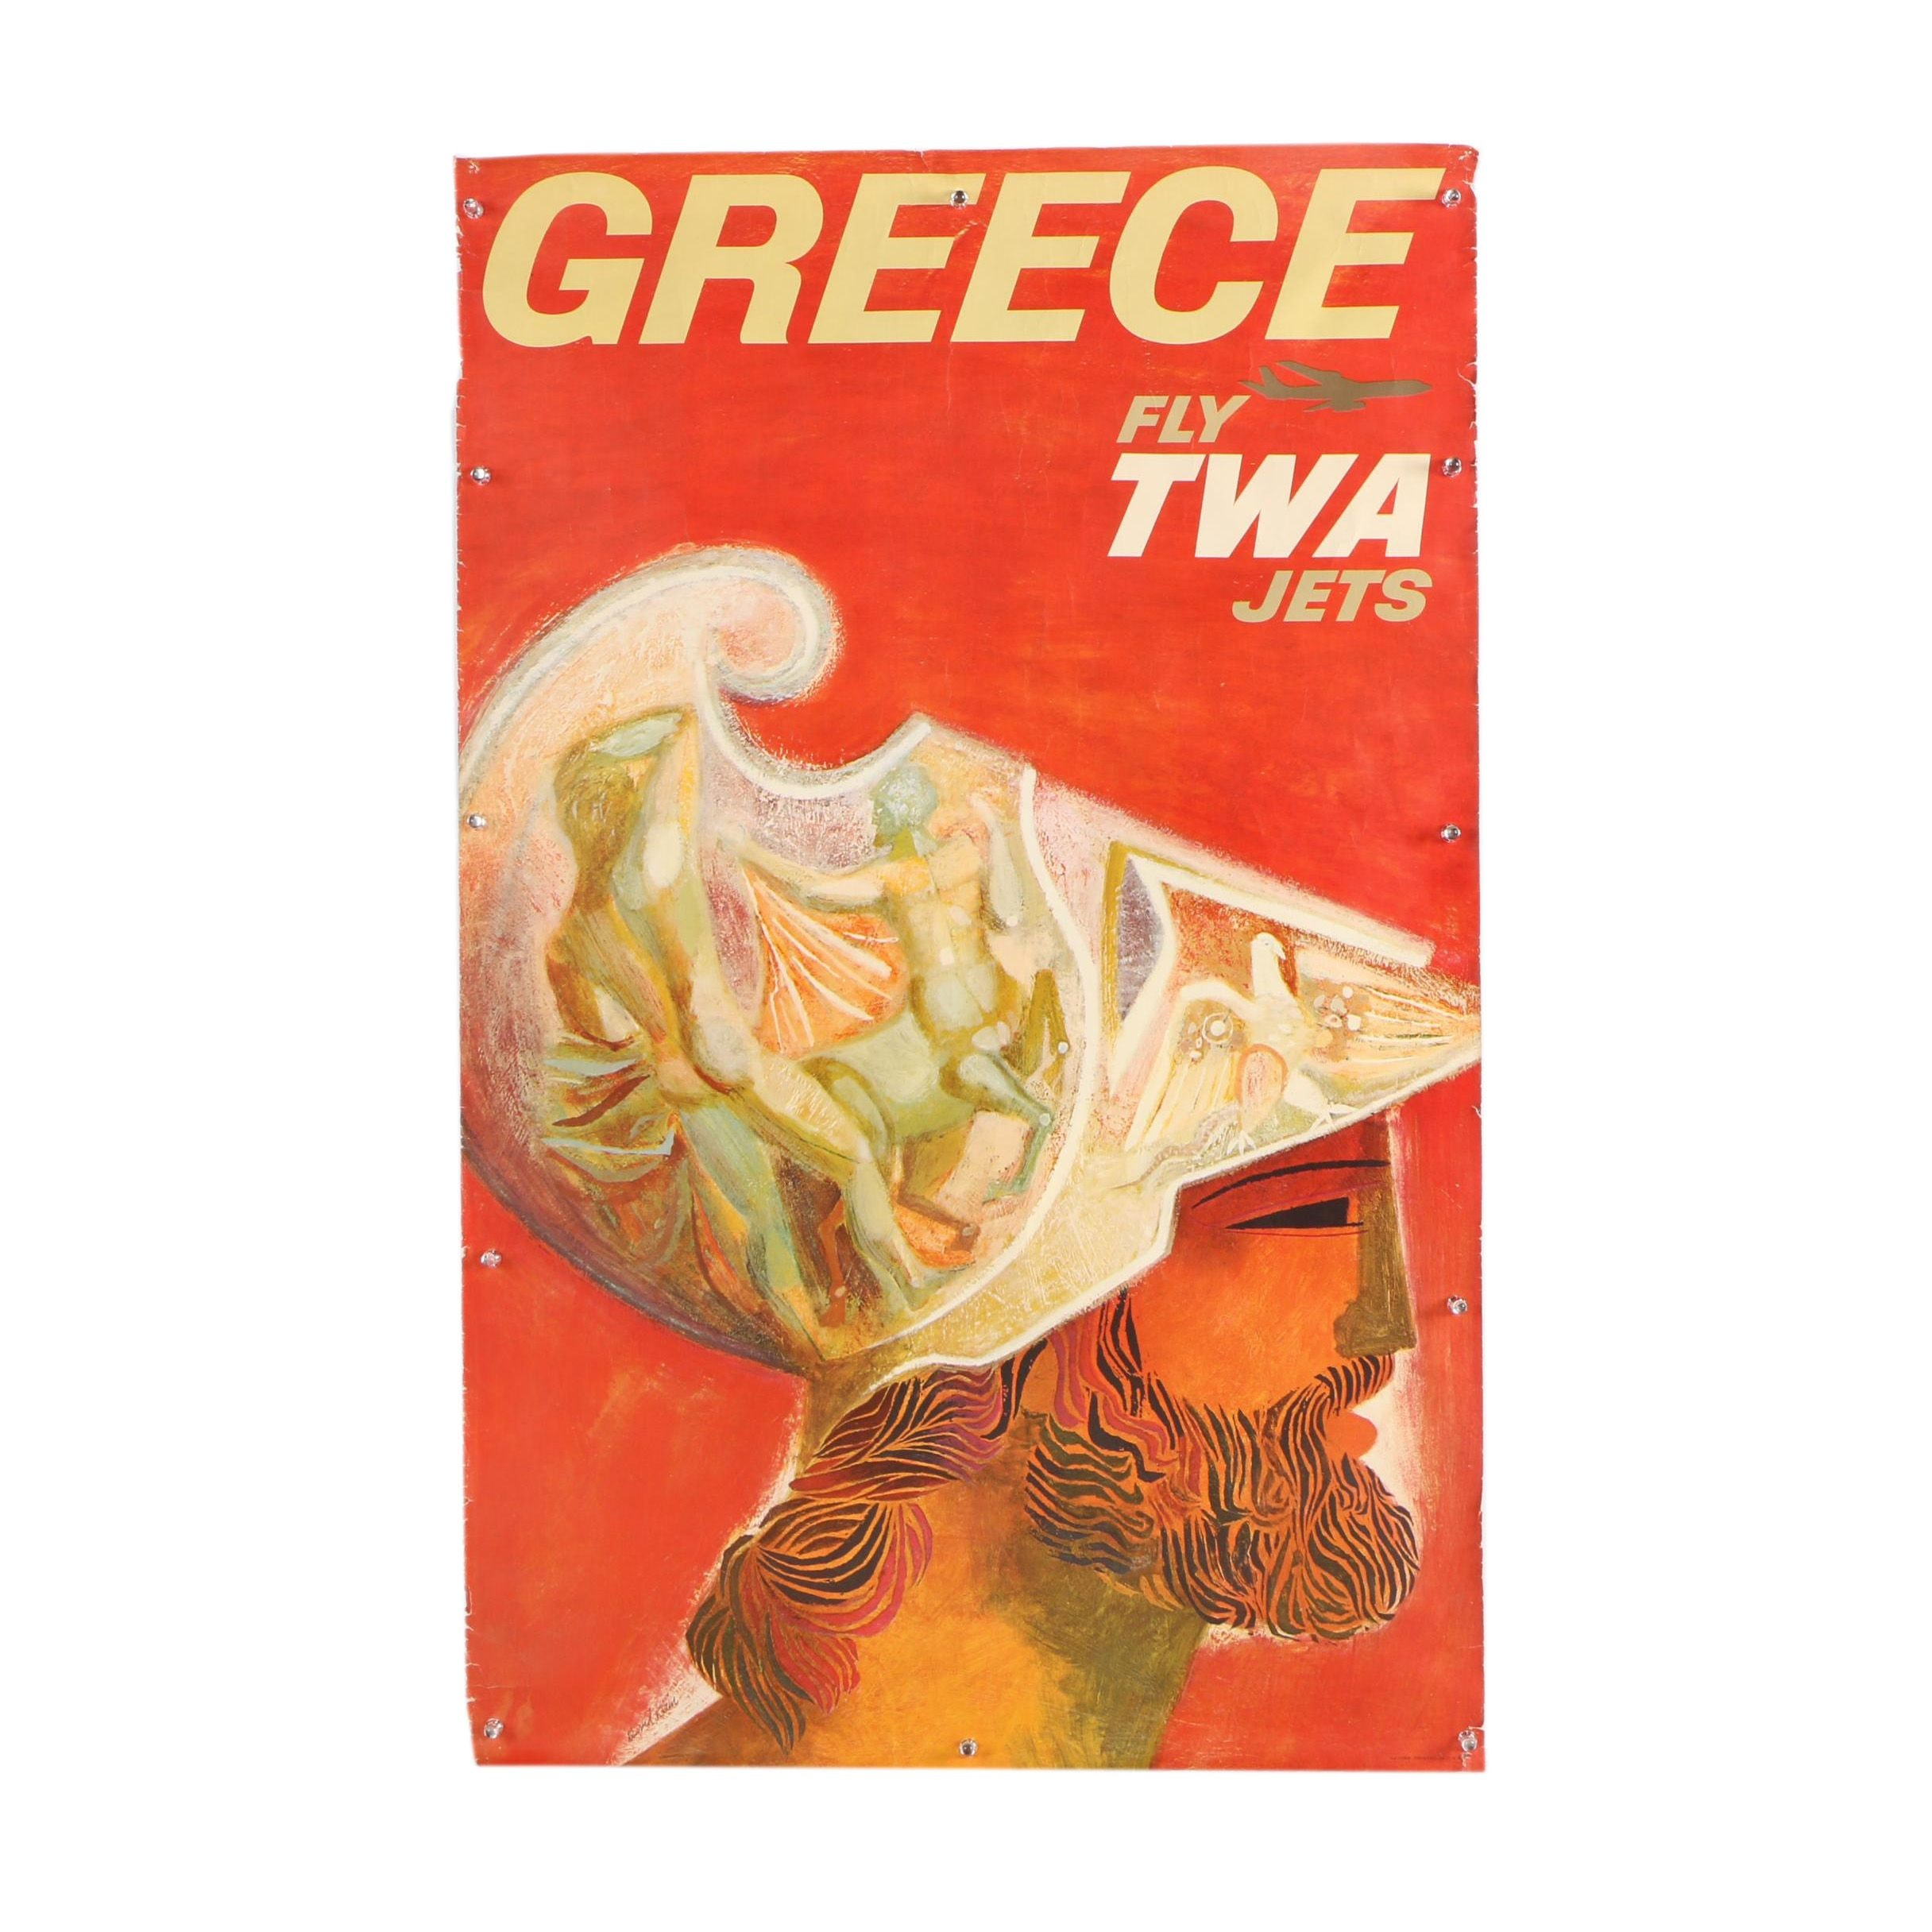 "Offset Lithograph Poster After David Klein ""Greece, Fly TWA Jets"""